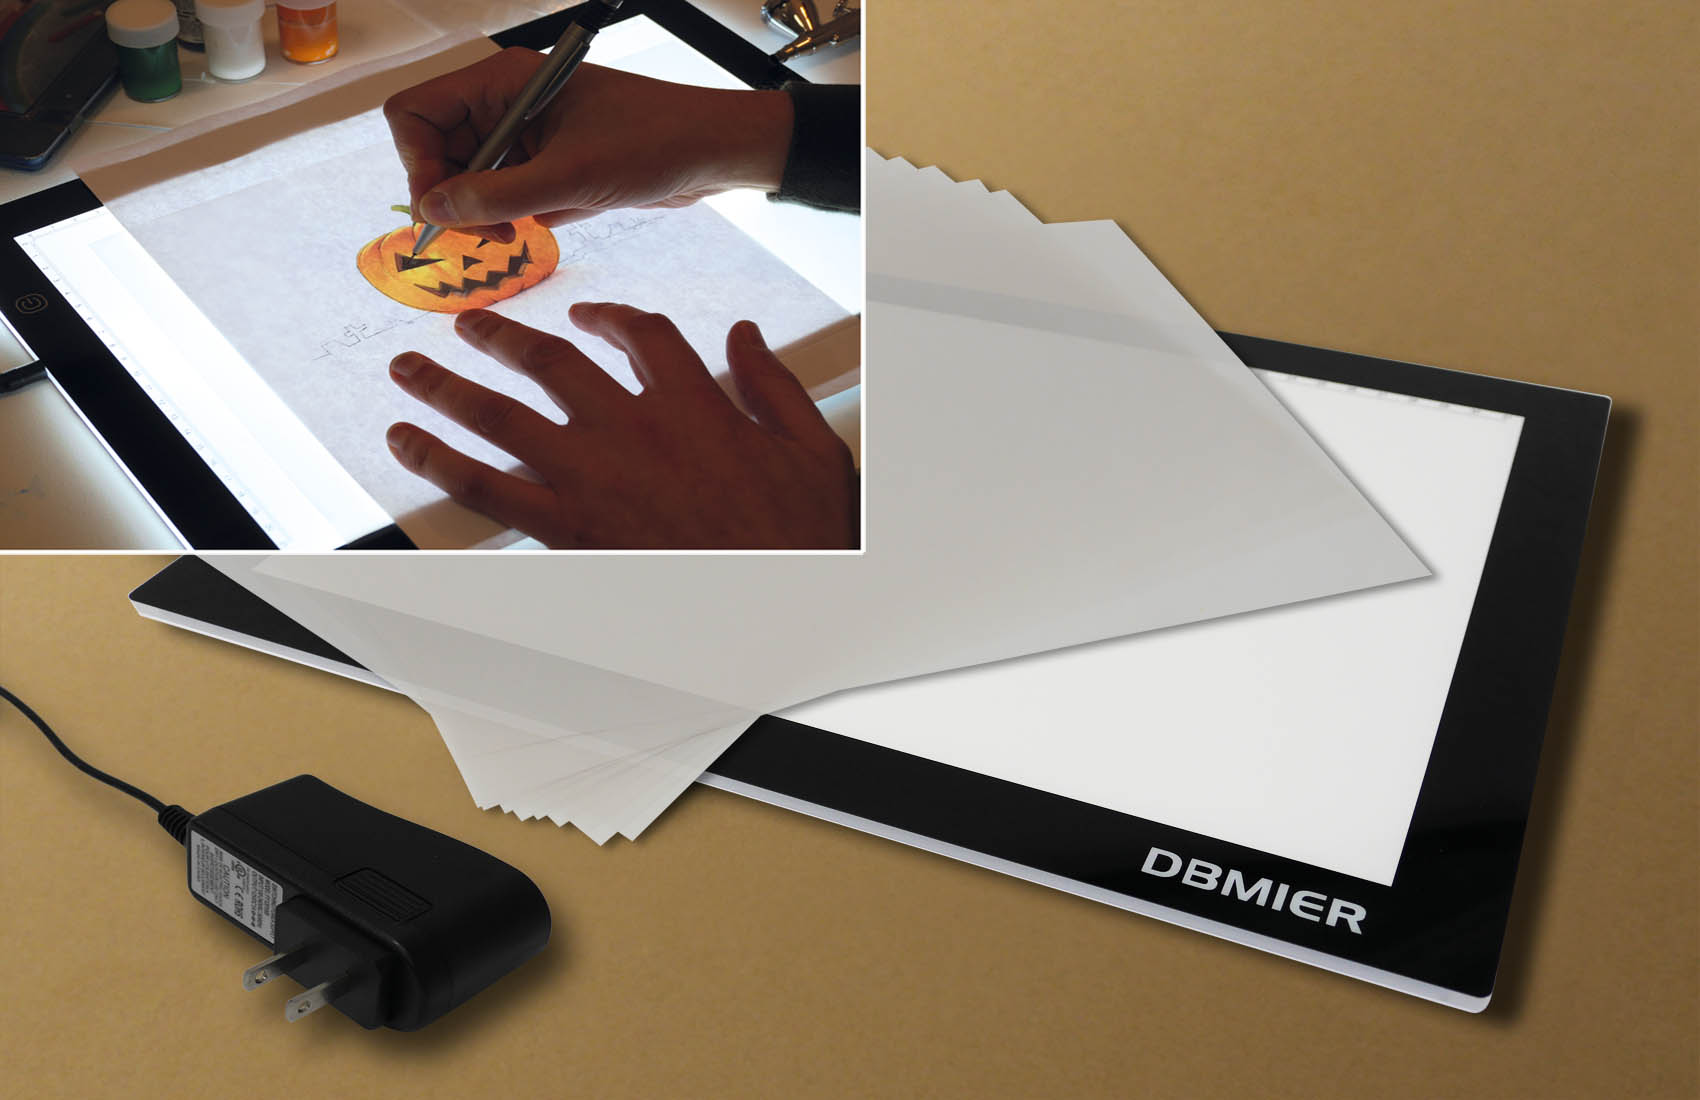 Affordable and light: Dbmier Light Pad with LED technology